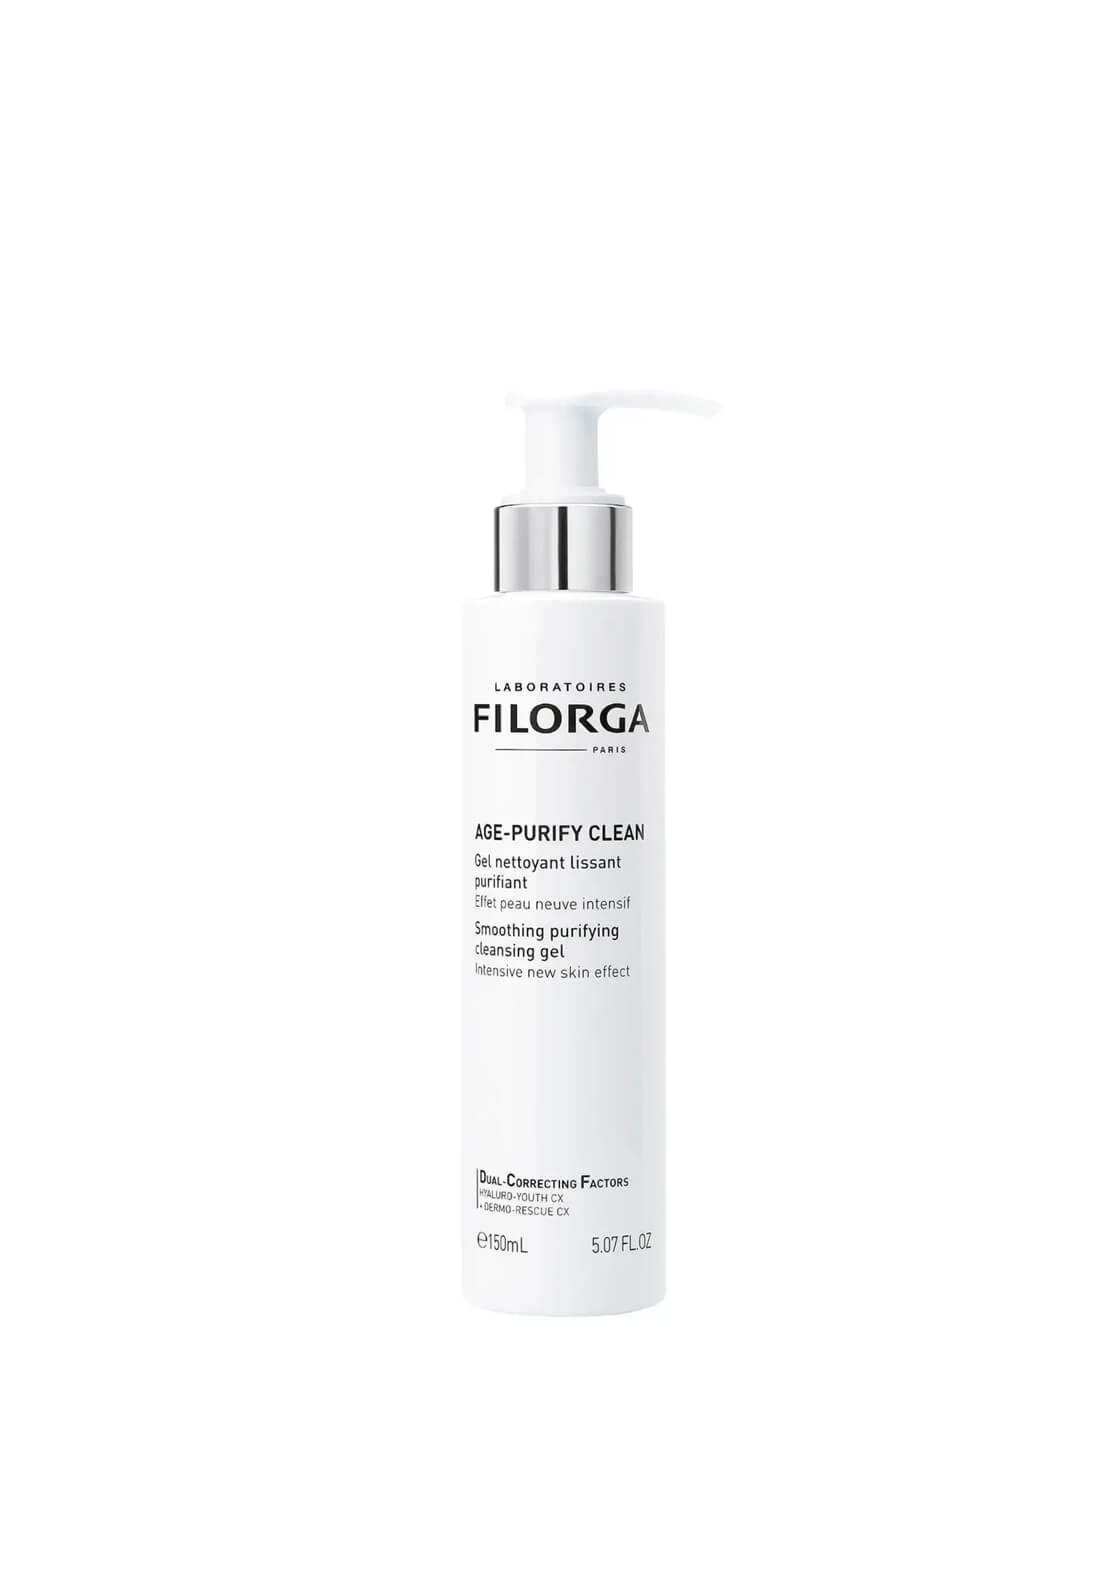 Filorga Age Purify Clean Smoothing Purifying Cleansing Gel